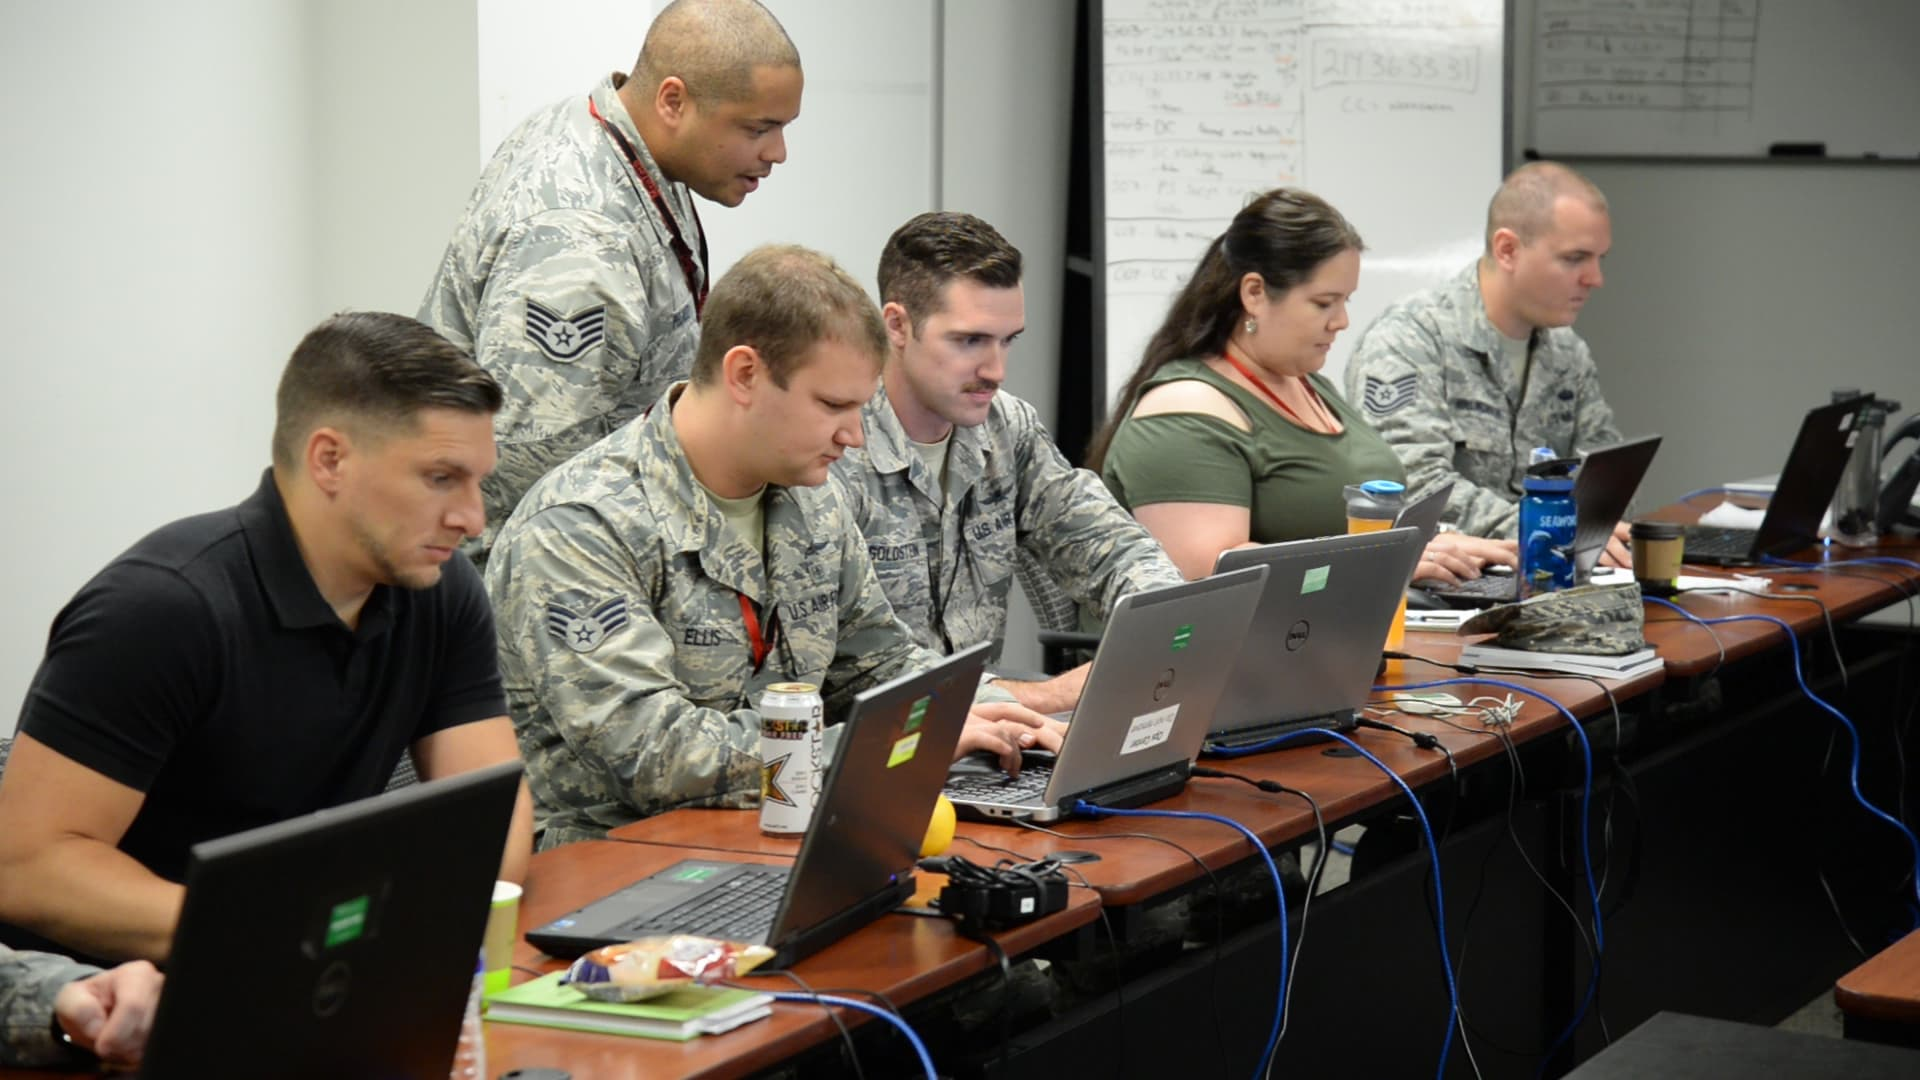 DISA employees working on-site in office